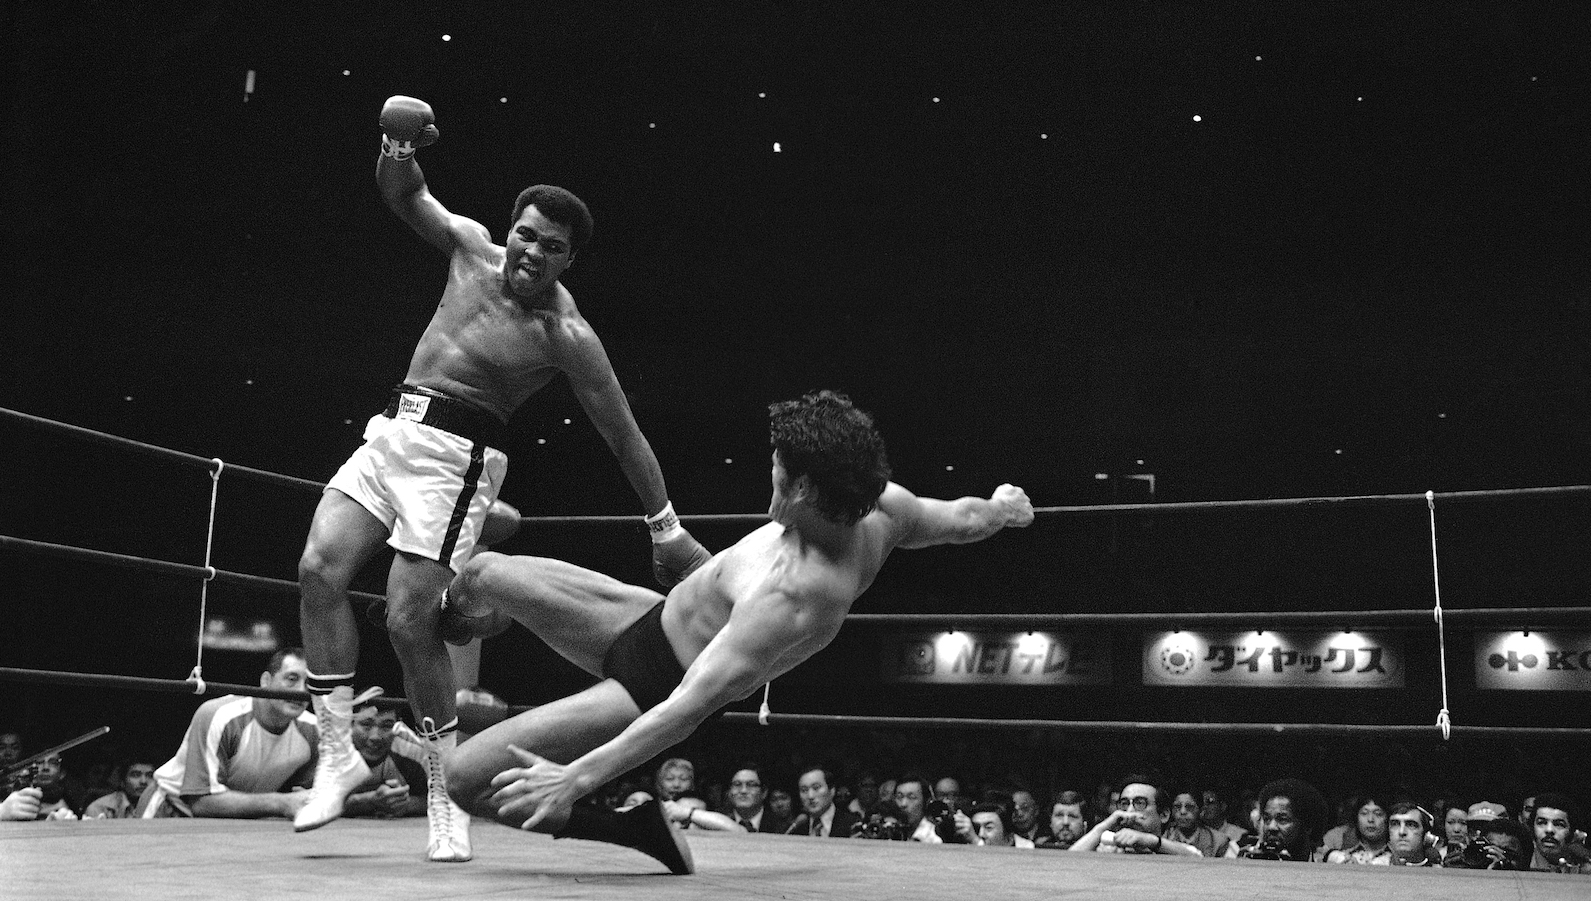 Antonio Inoki kicks Muhammad Ali to pull him down on the canvas 8th round of their 15-round of the World Martial Arts Championship fight in Tokyo on Saturday, June 26, 1976.  Both fighters fought to a draw. (AP Photo)